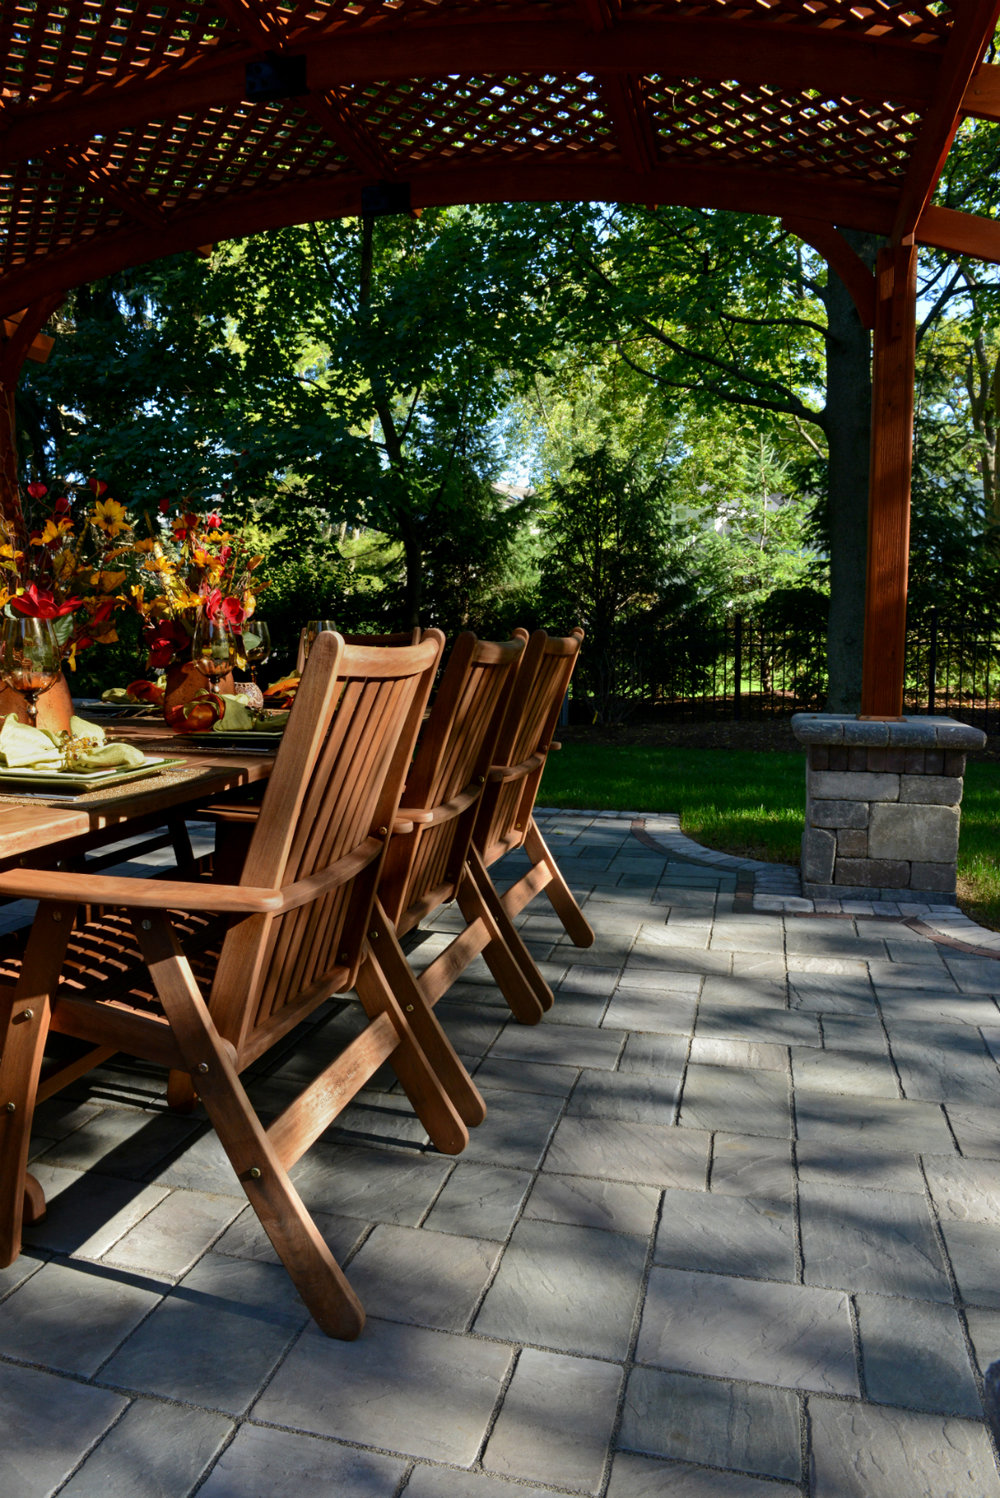 How Unilock Pavers Can Upgrade the Look of your Patio Designs in Jackson NJ